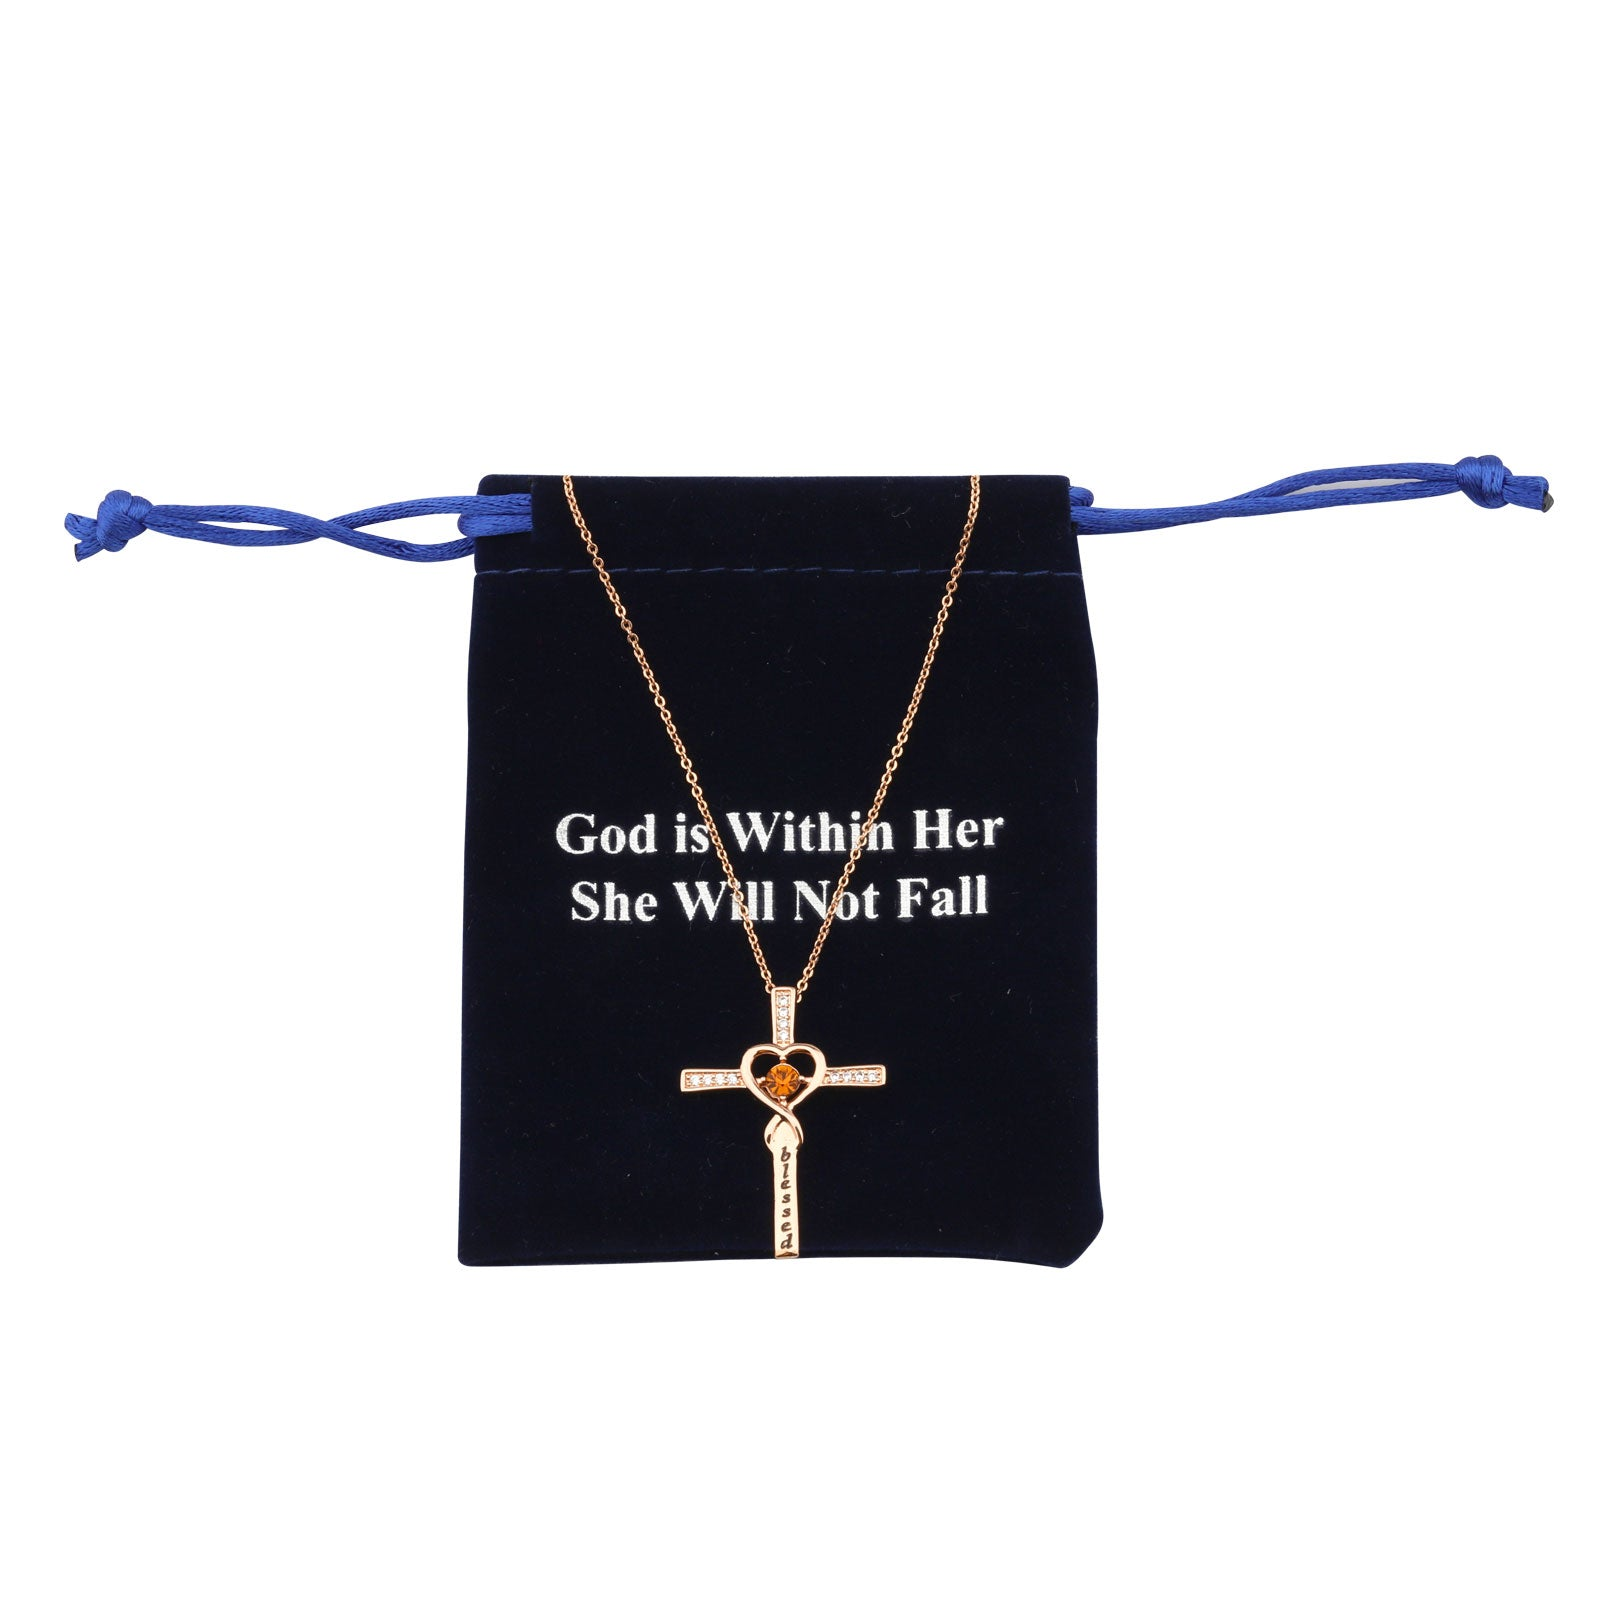 God is Within Her She Will Not Fall Rose Gold Cross Pendant Necklace with Topaz Birthstone Gift for Women